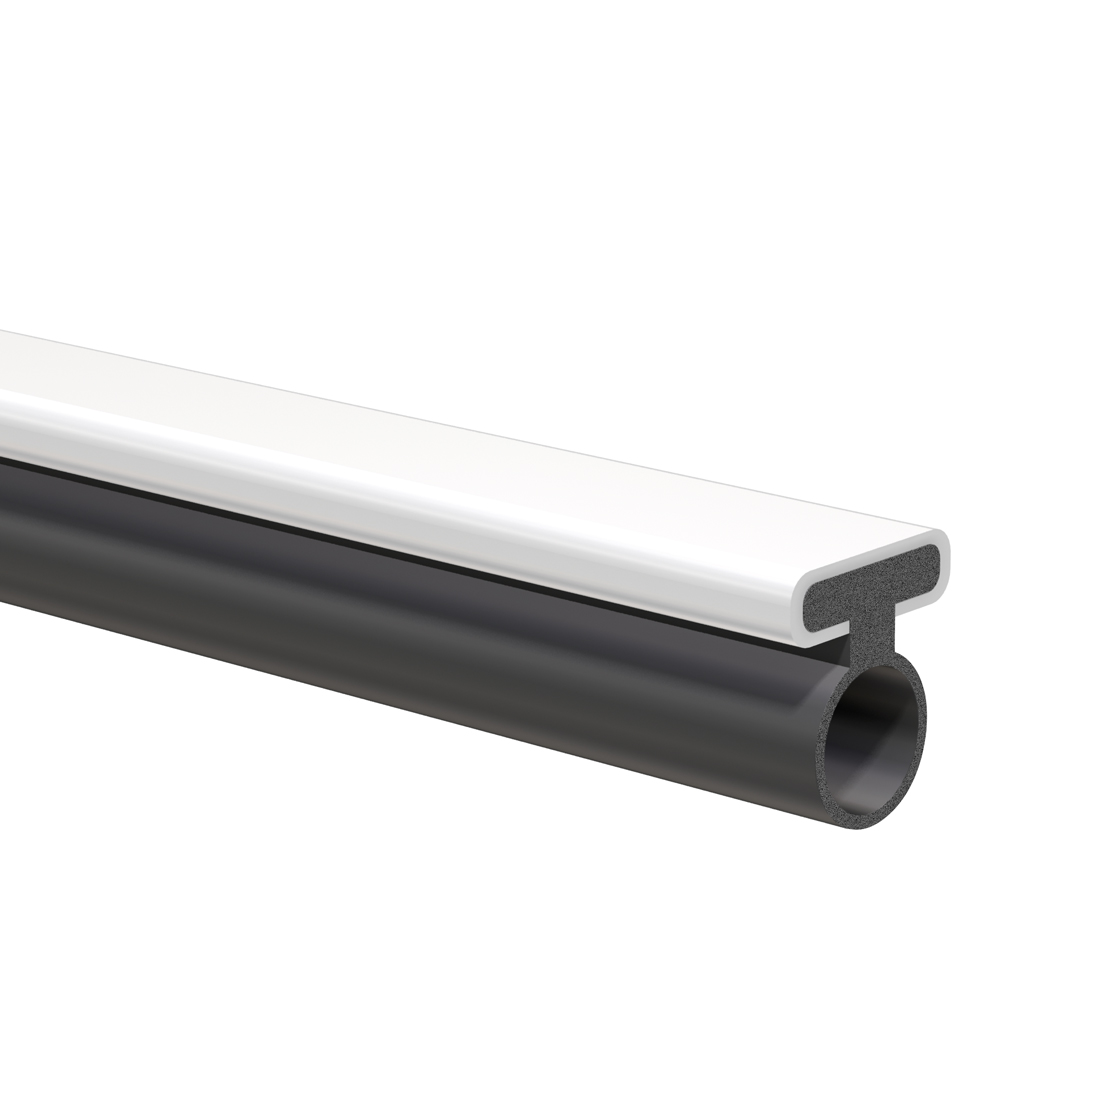 MMA6 Acoustic Seal